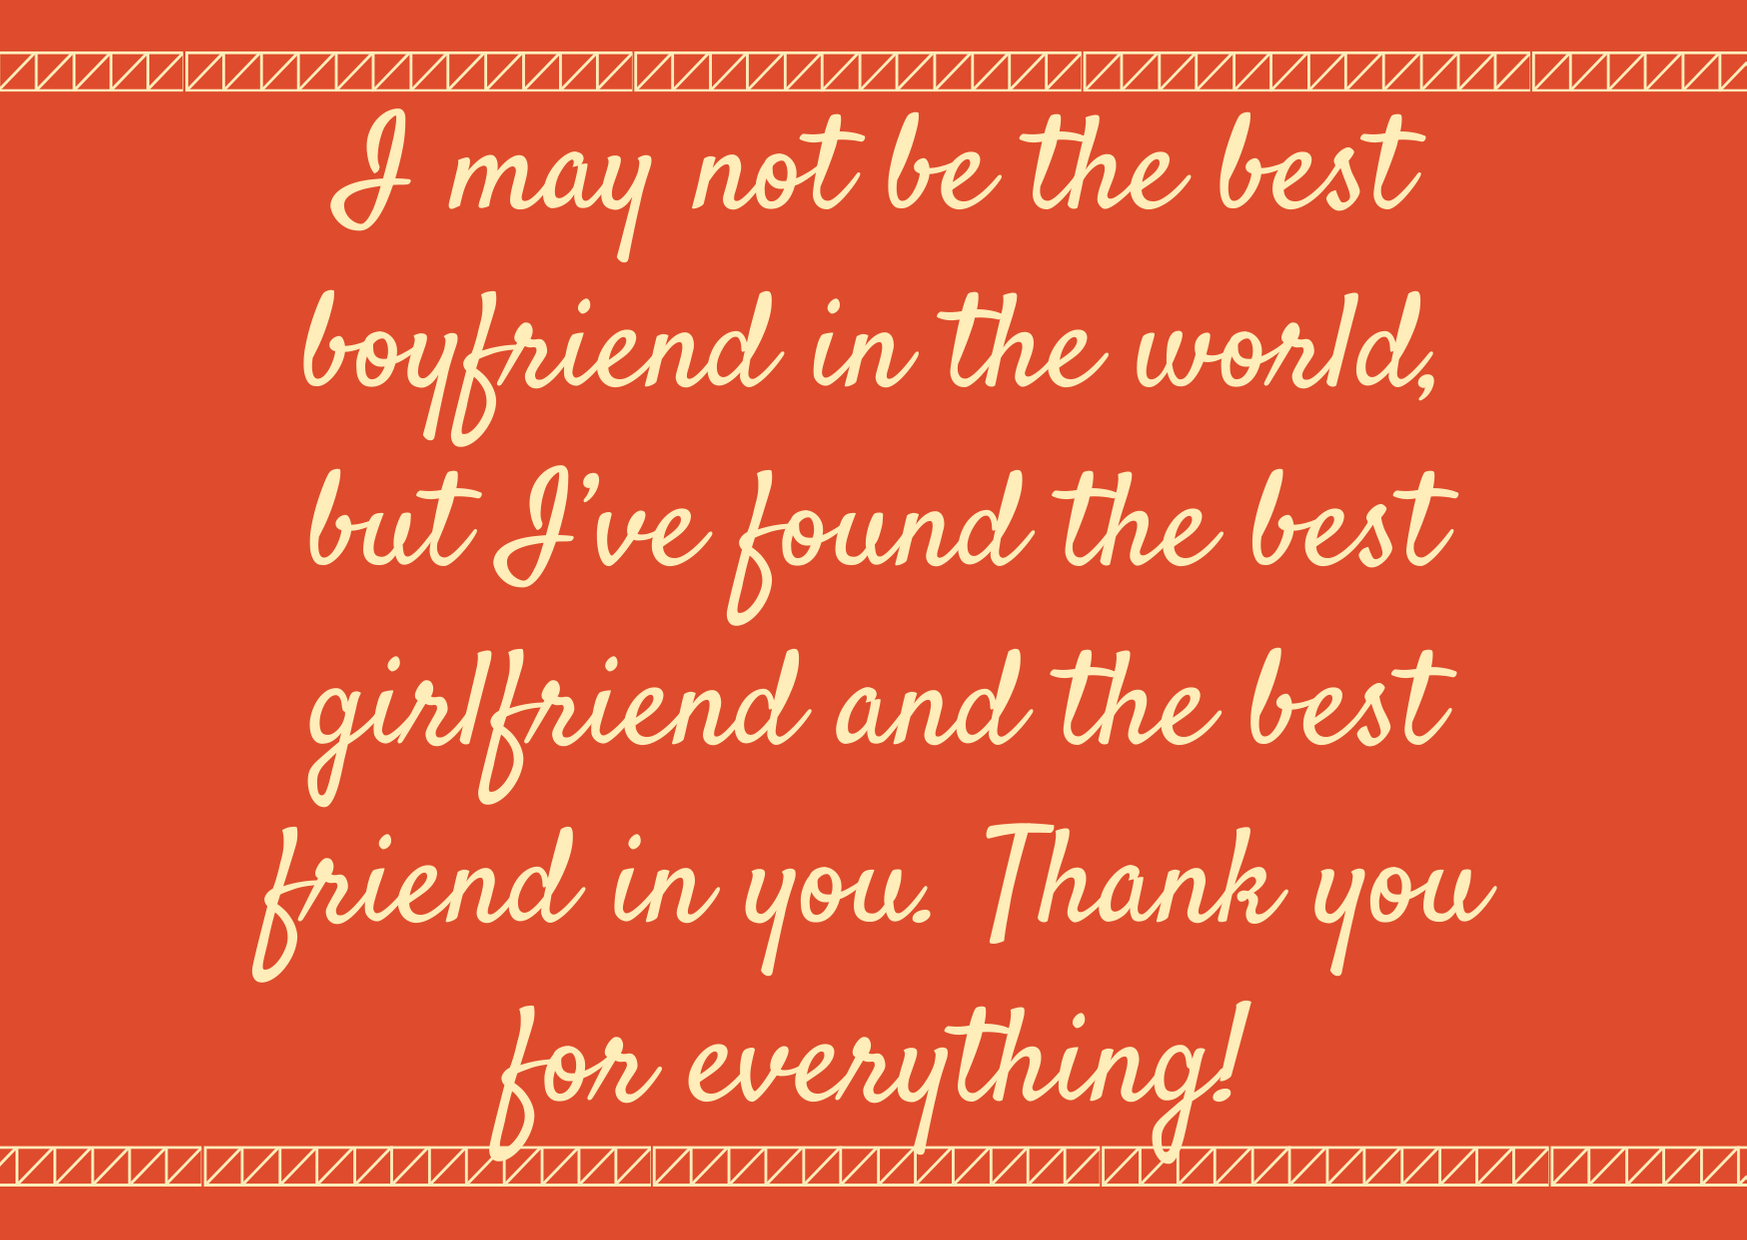 thanku you messages for girlfreind